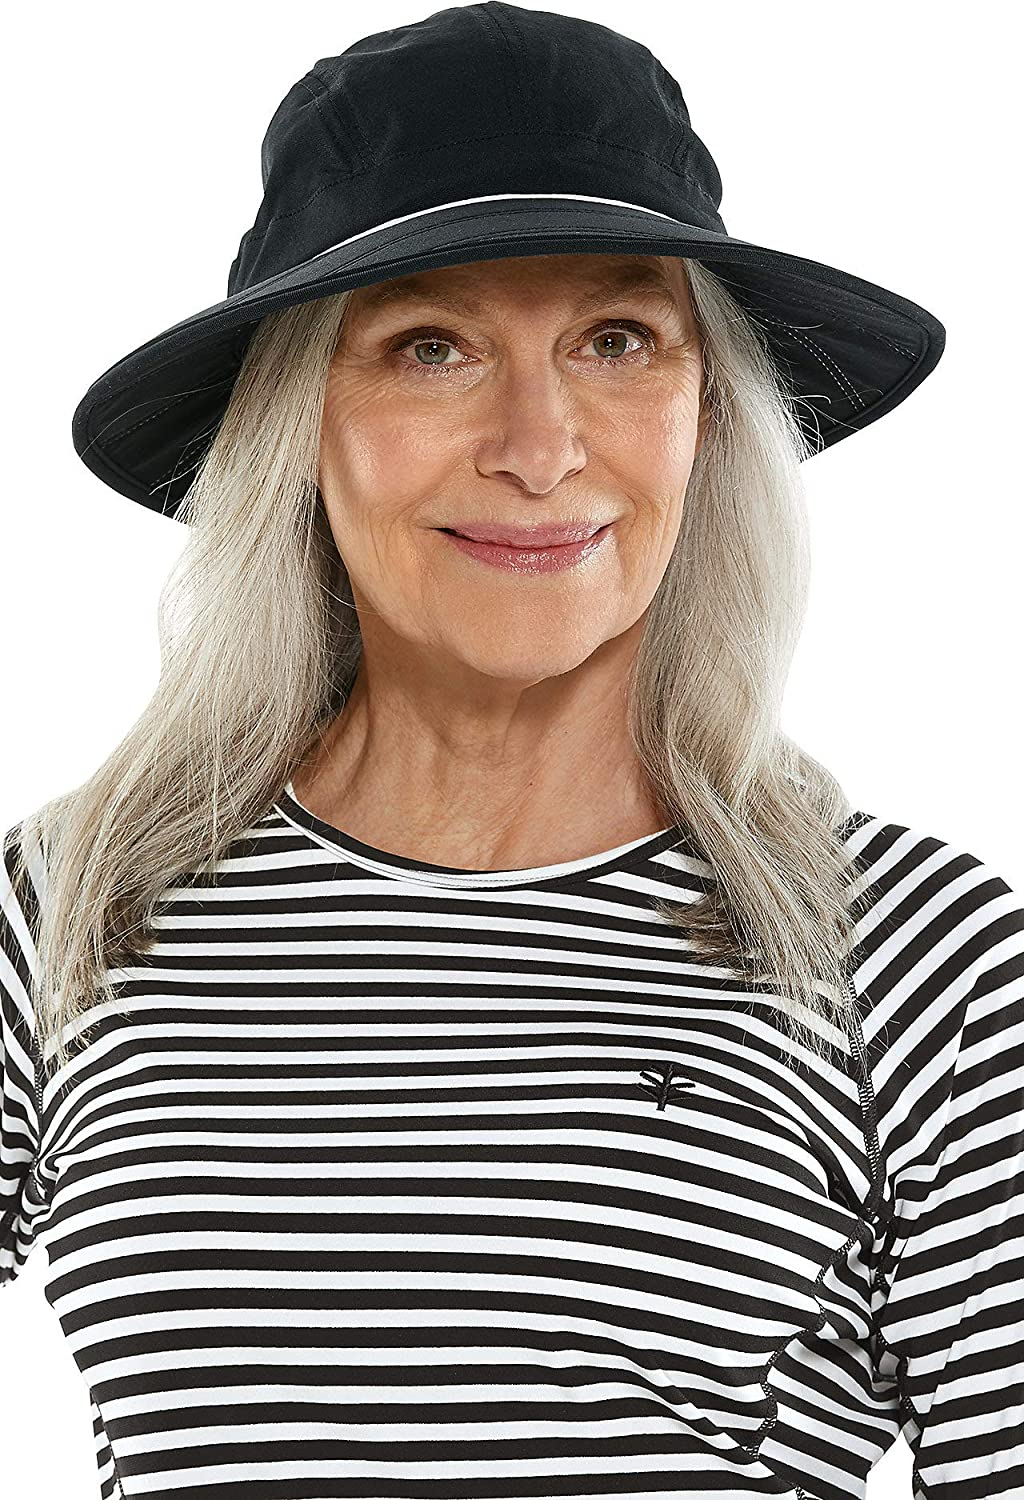 Coolibar UPF 50+ Women's Cheap SALE Start Evelyn Swim - Protective Cheap mail order specialty store Sun Cloche